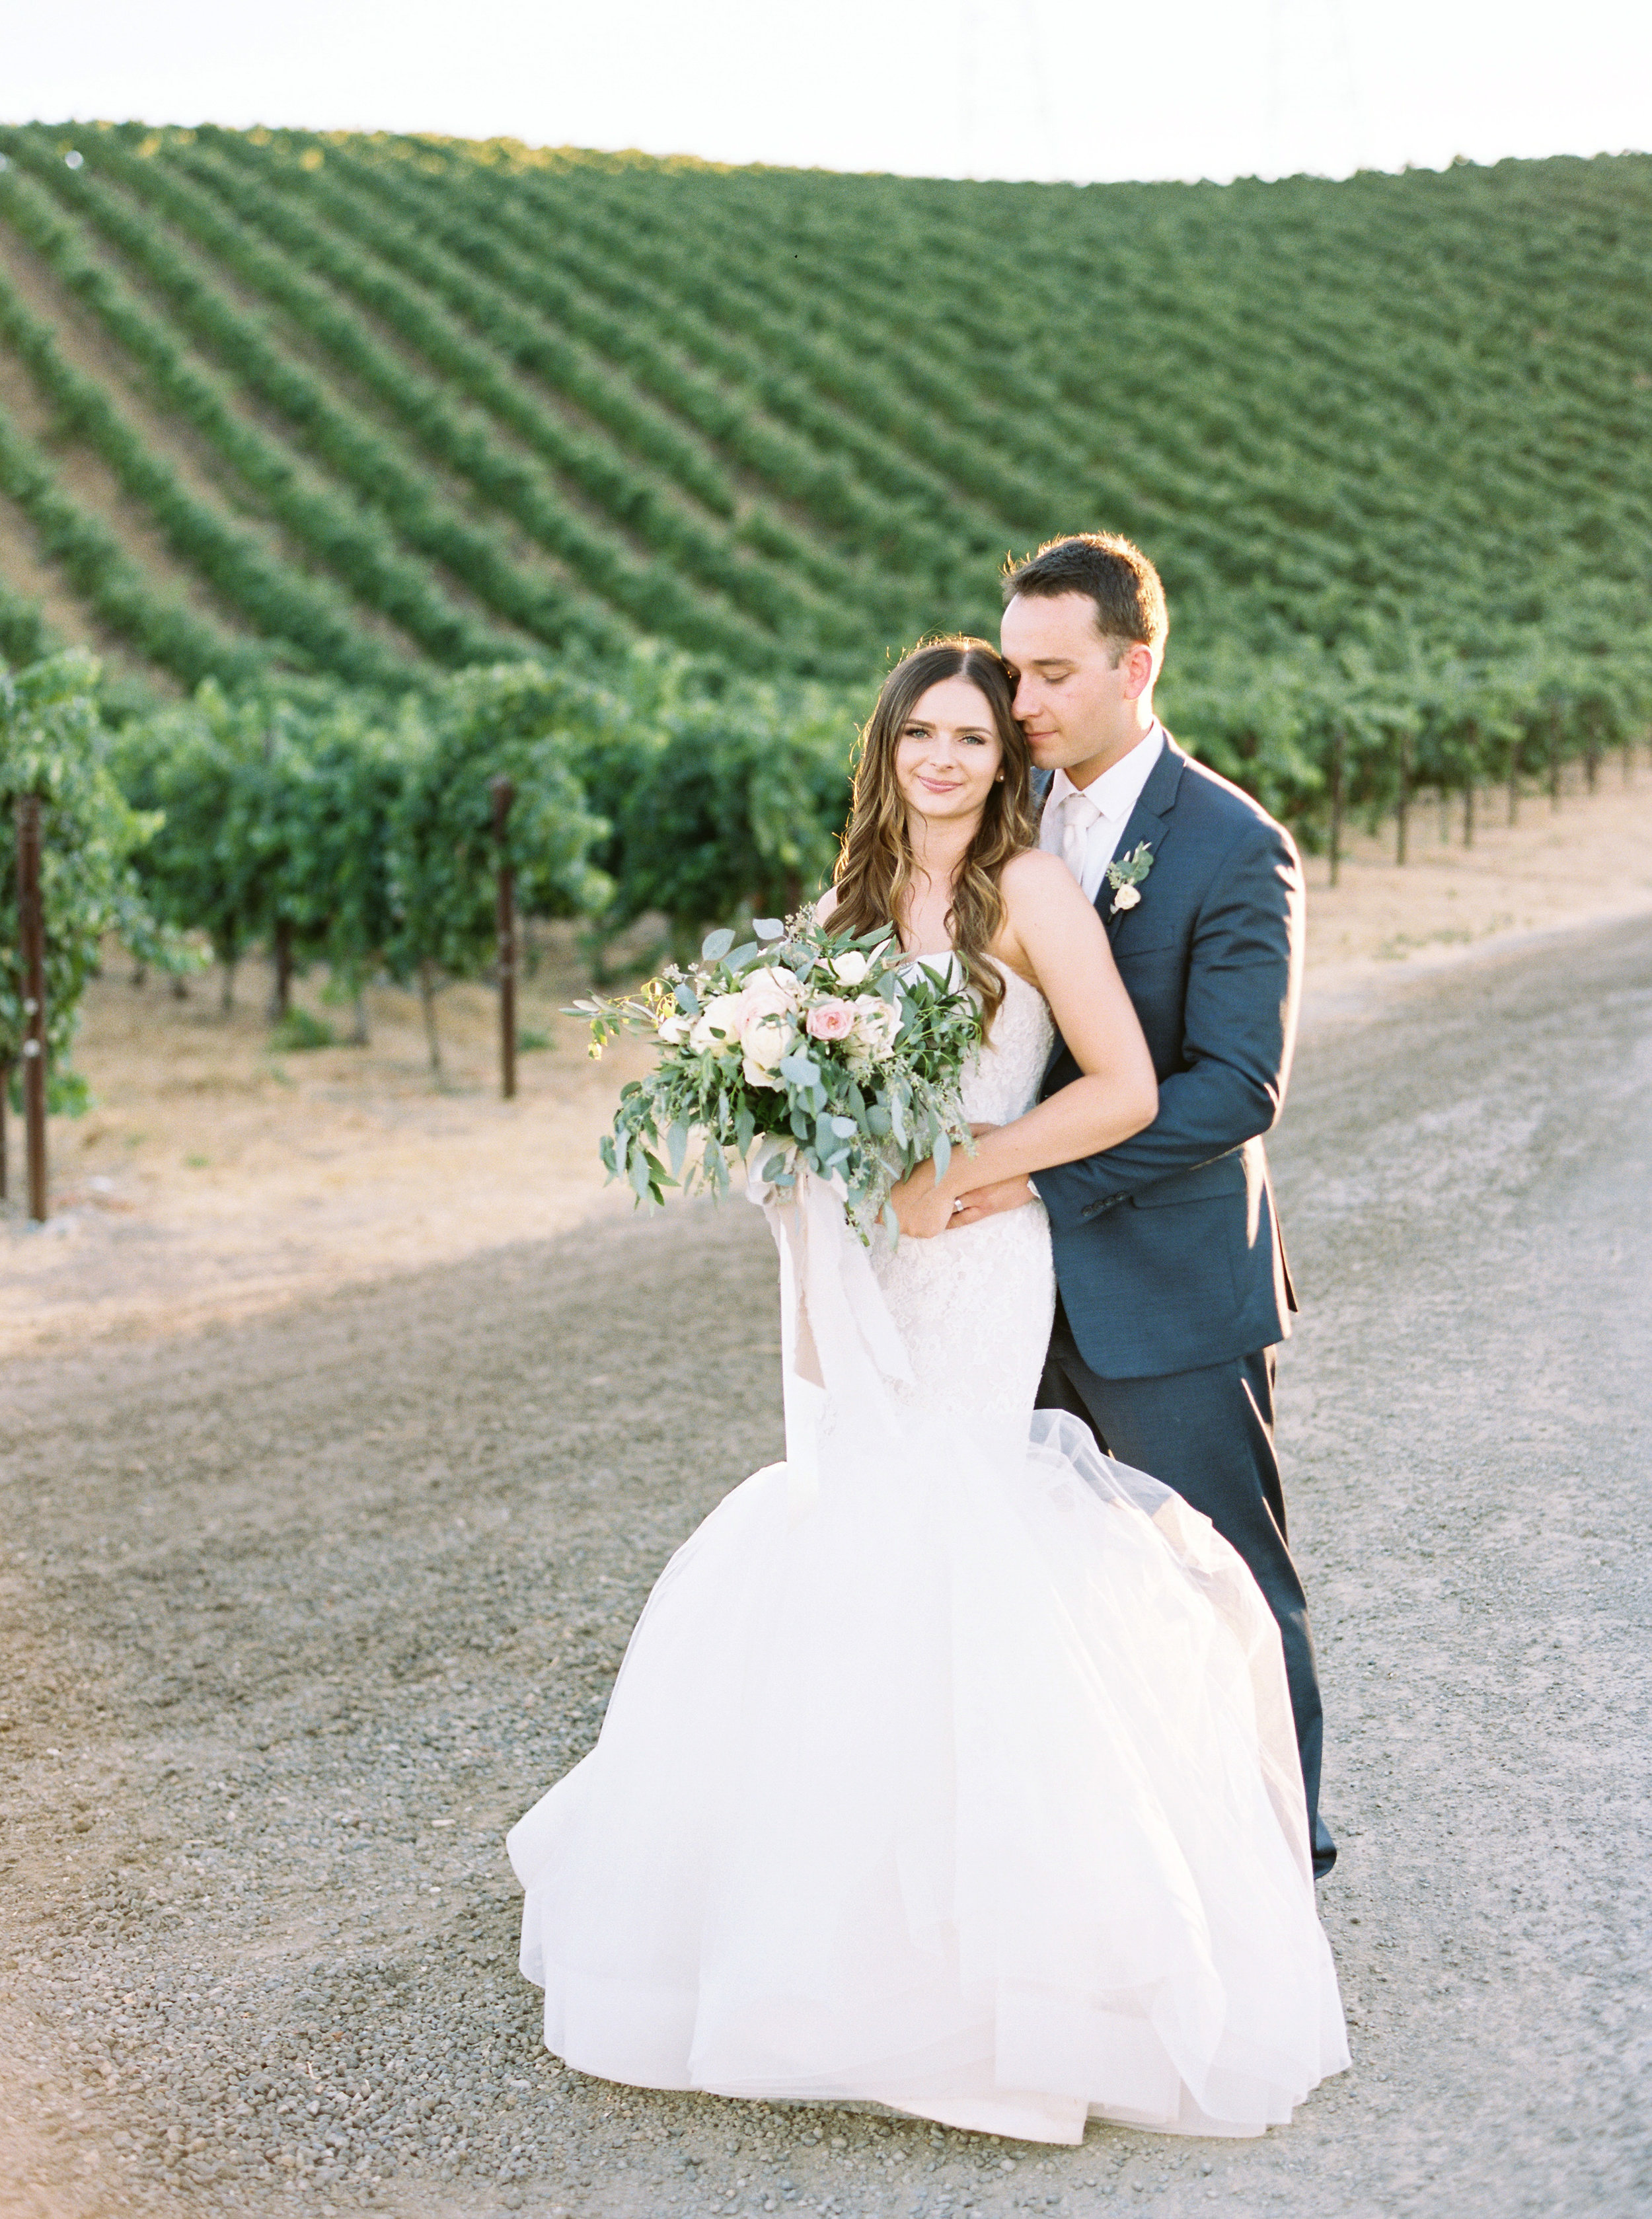 muriettas-well-wedding-in-livermore-california-43.jpg